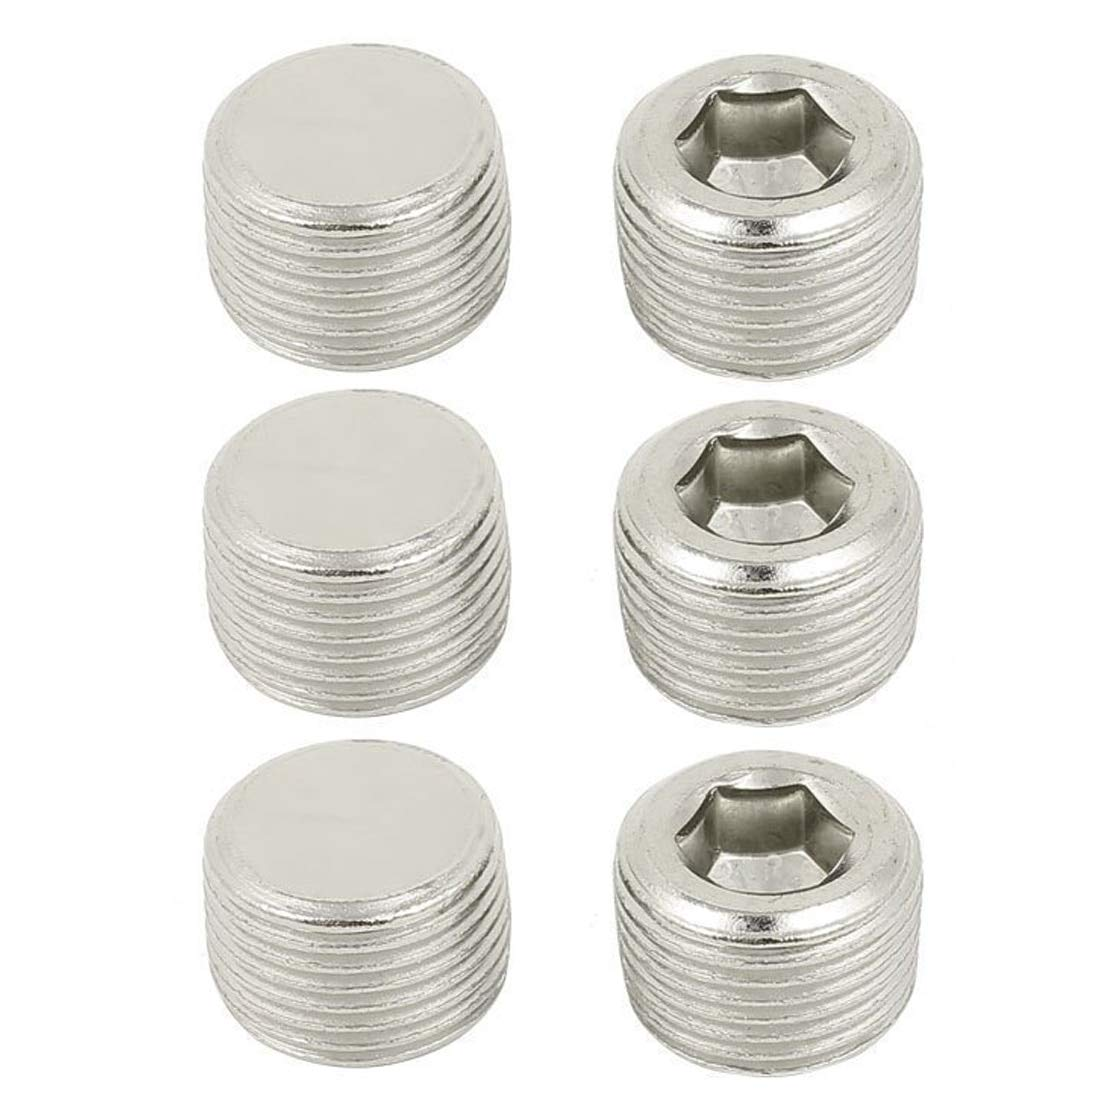 8BSP Thread 11mm Height with Hex Head for Hose Fitting Ochoos CSS 10pcs 3